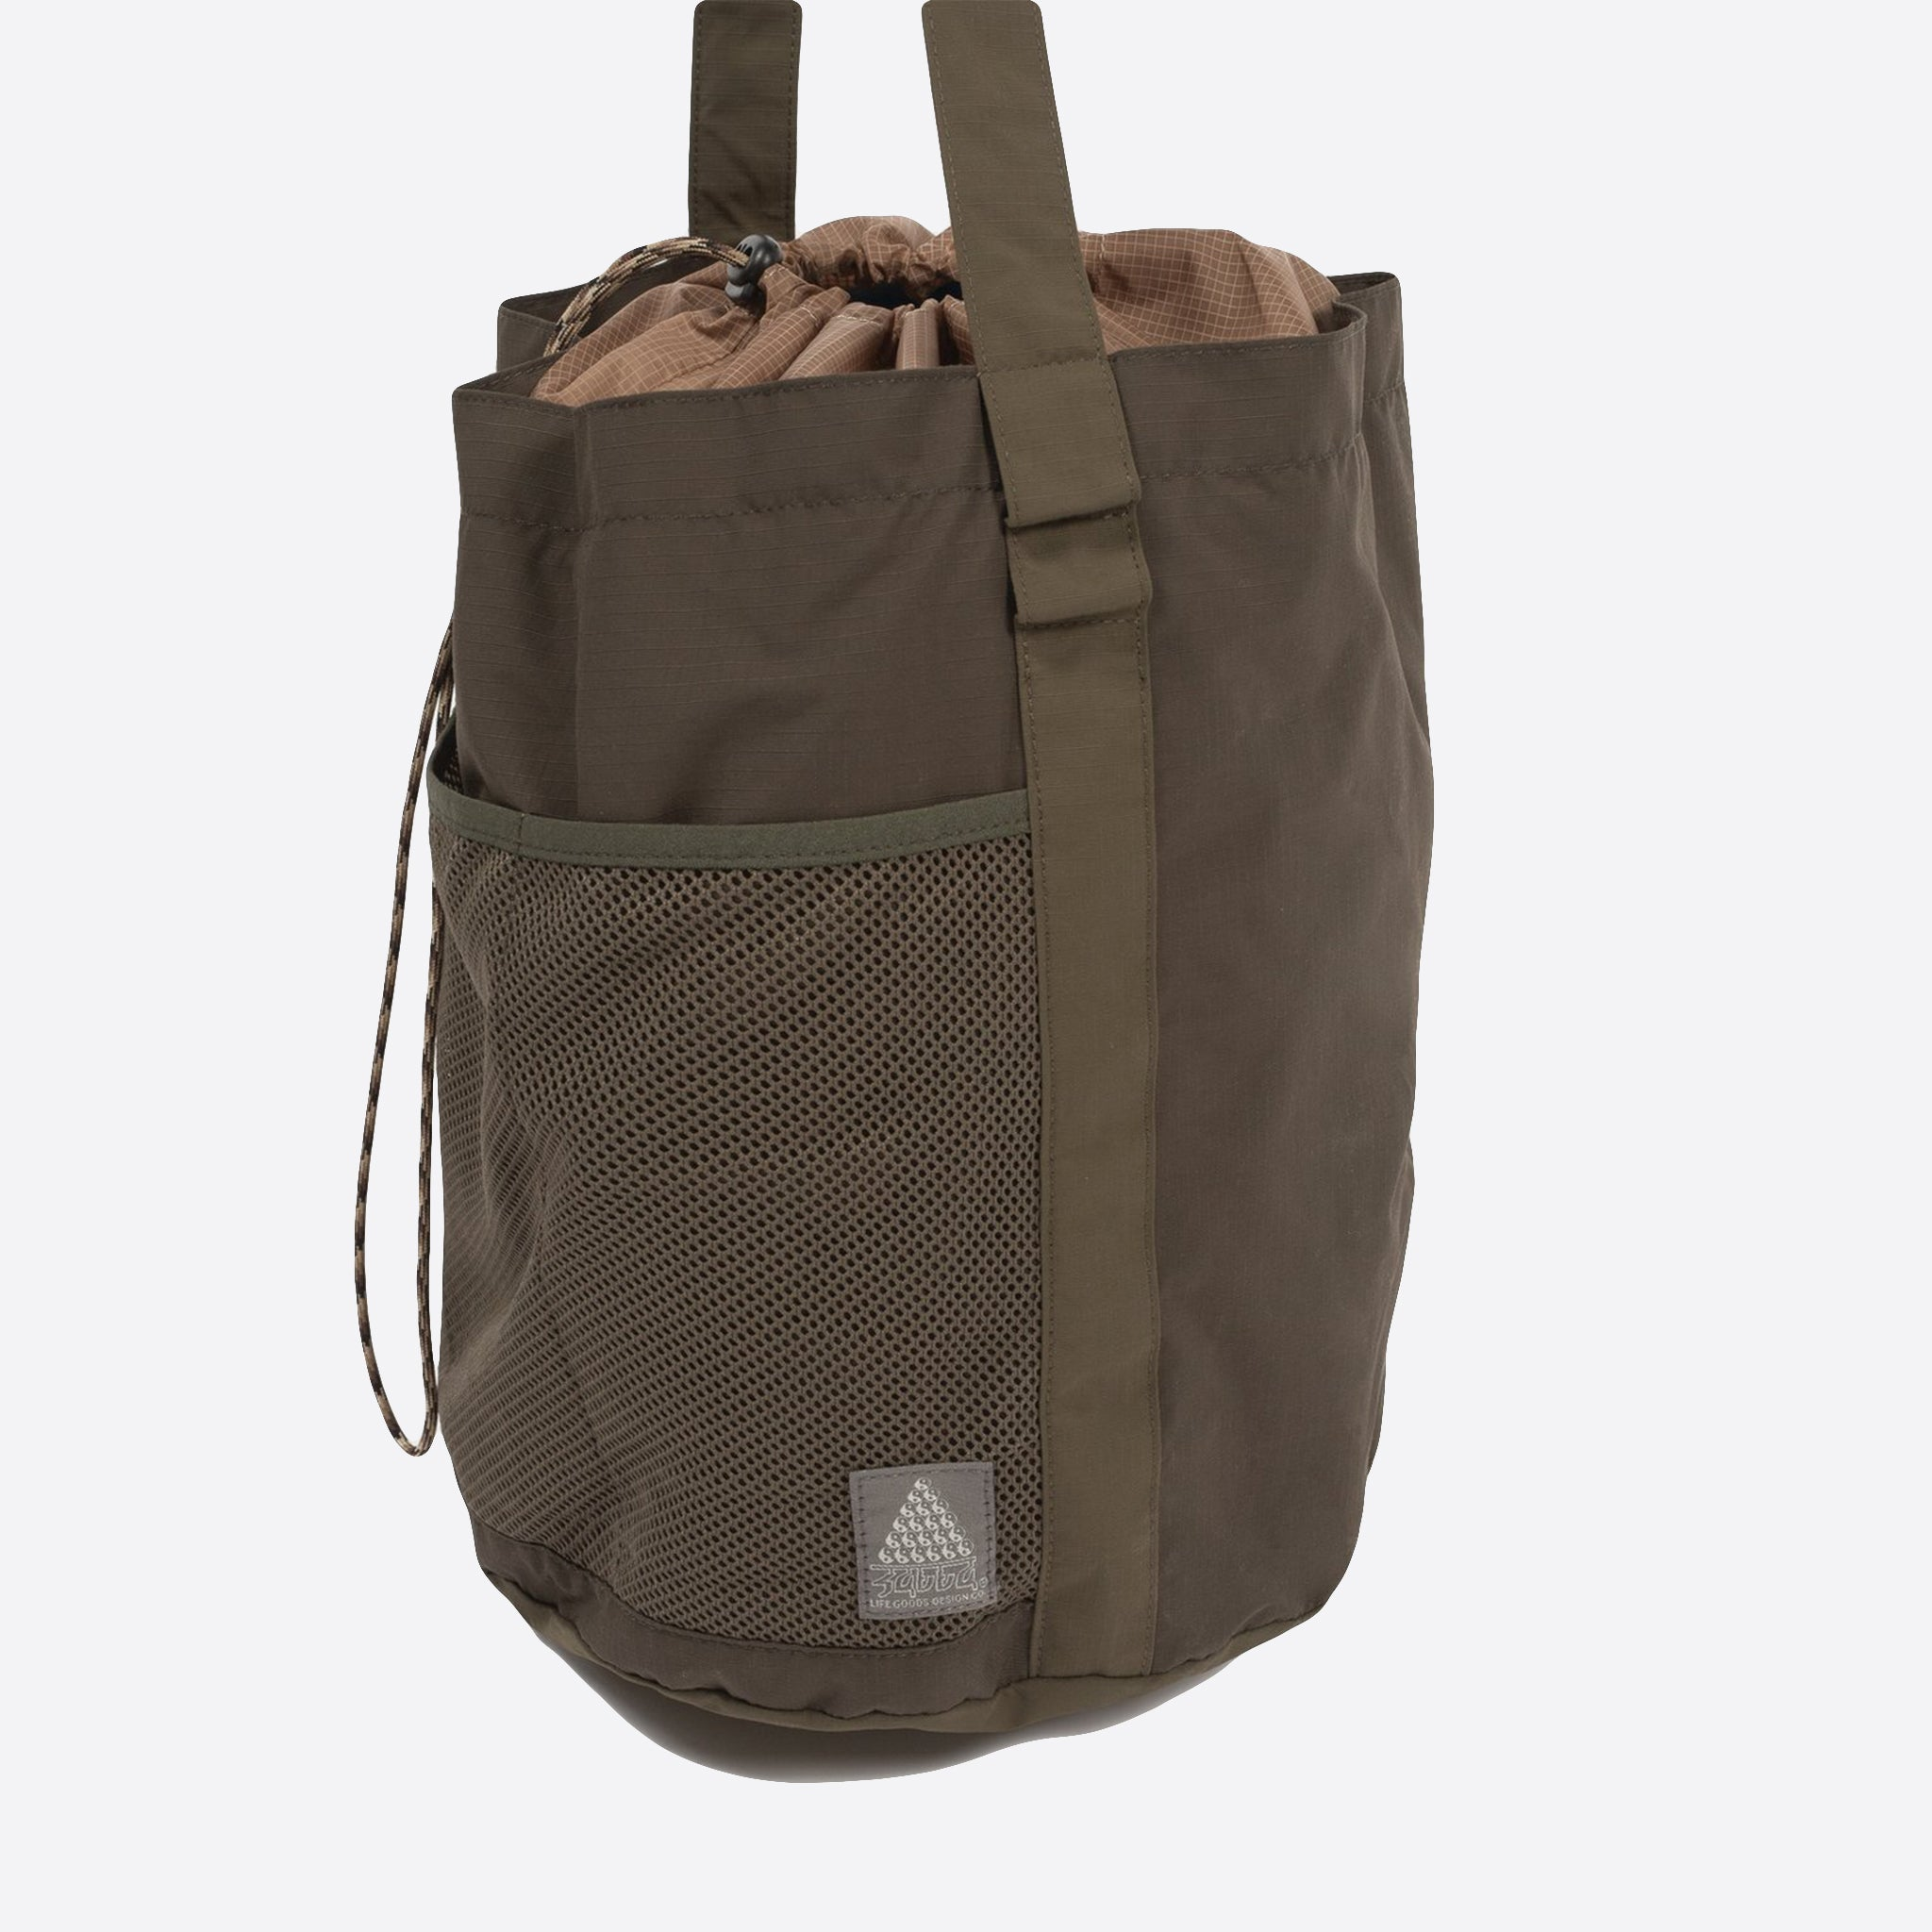 Satta Bubbler Bag in Dark Olive